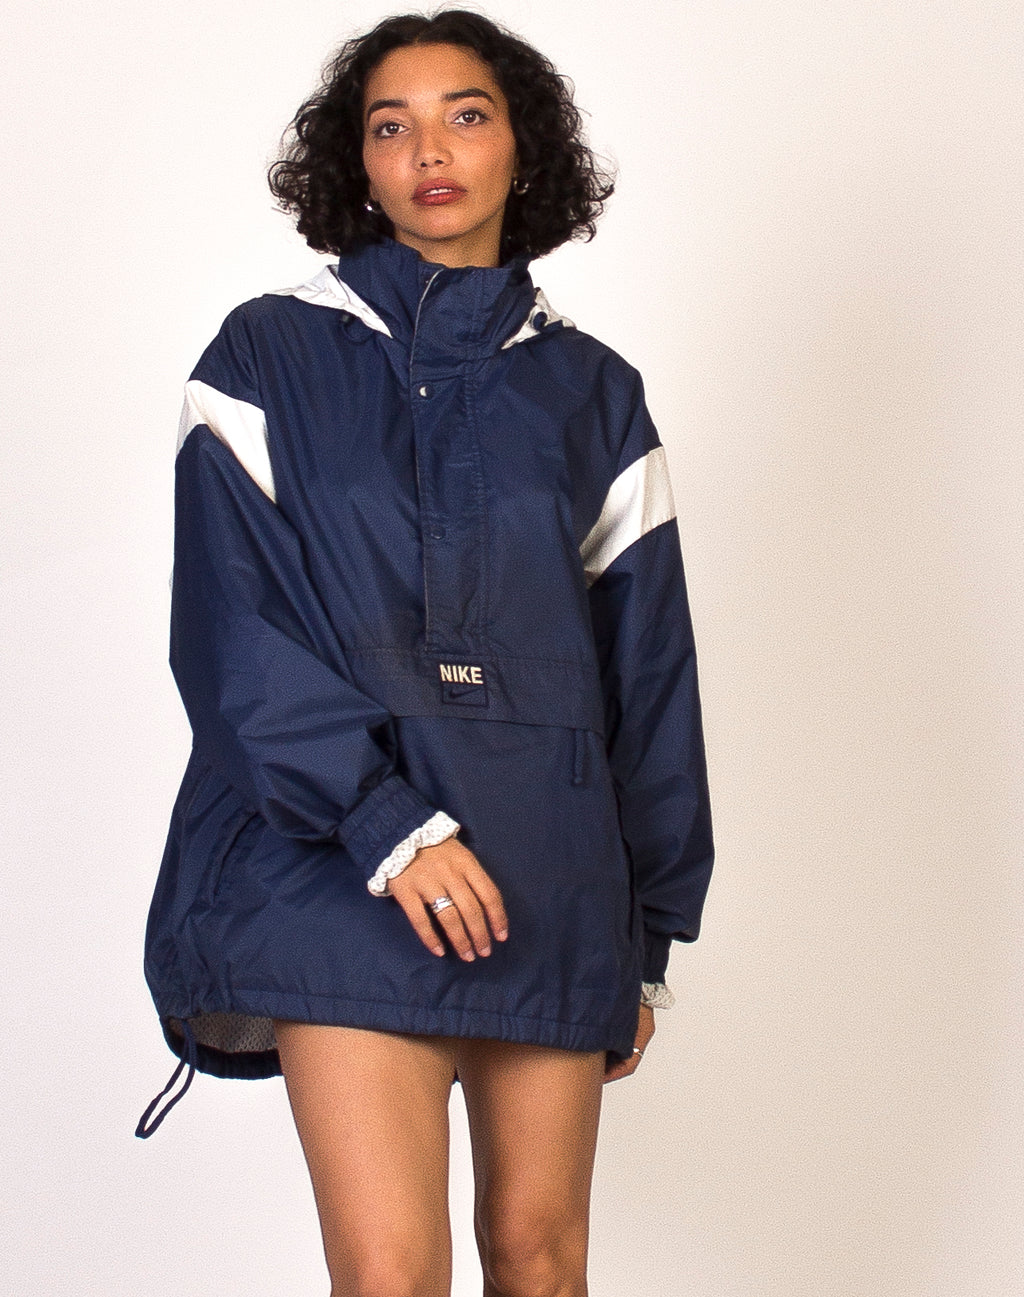 NIKE NAVY WATERPROOF PULLOVER JACKET